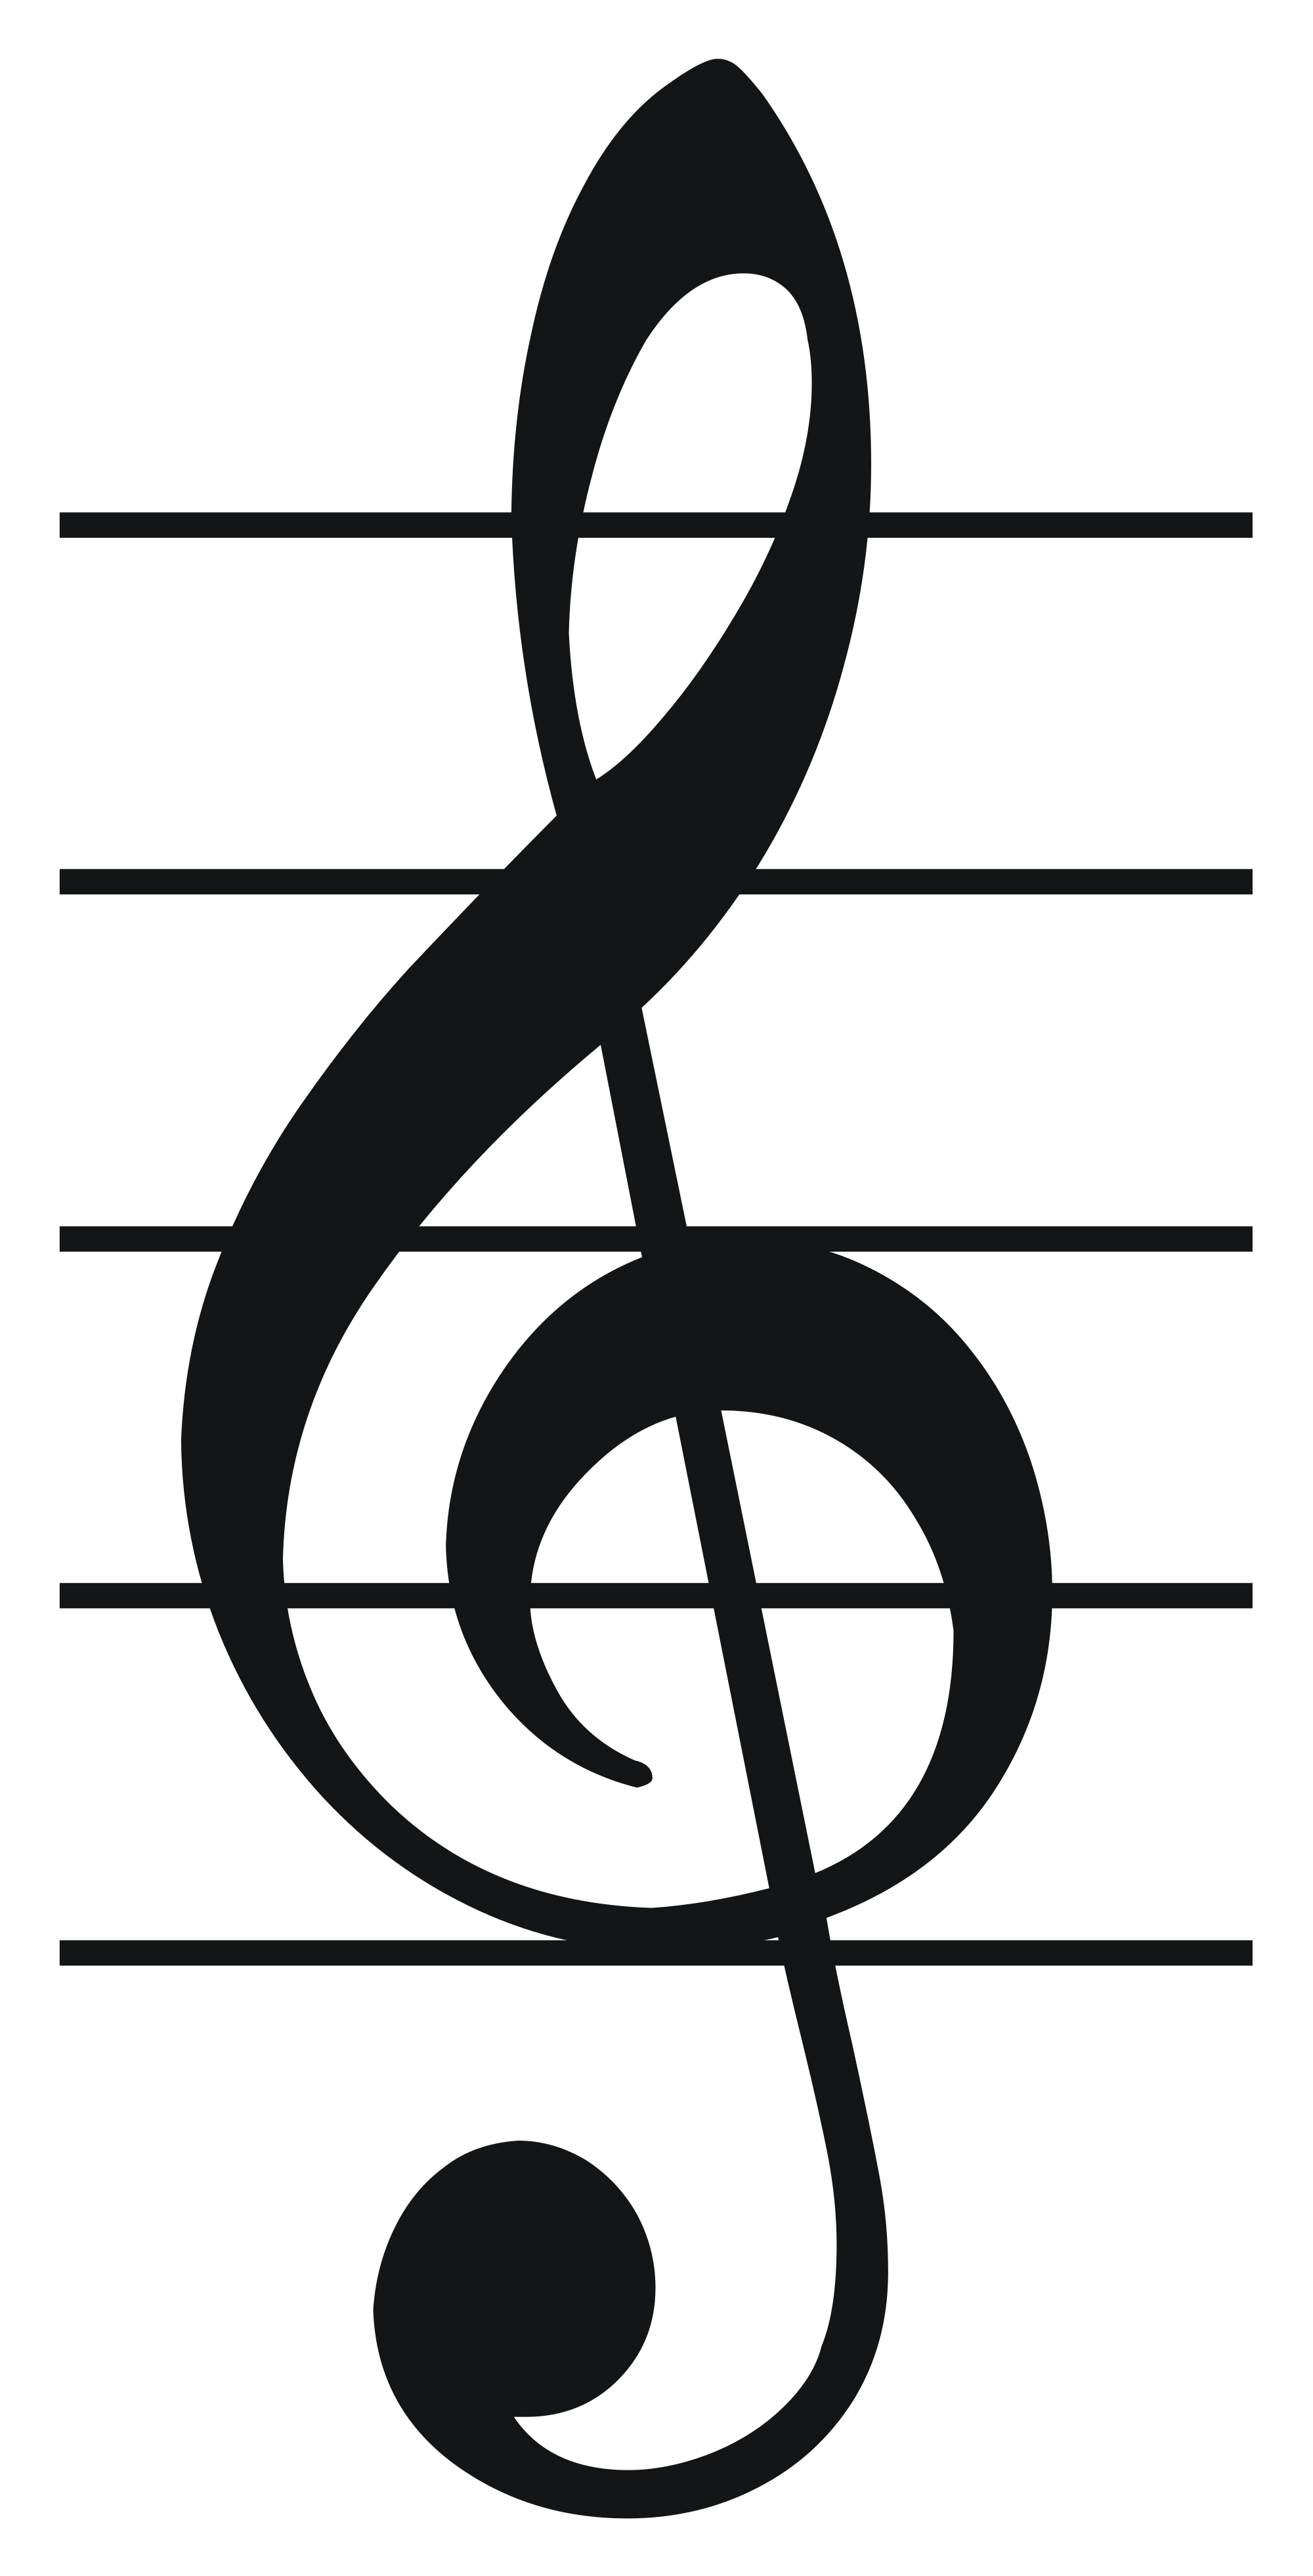 Treble clef and cross clipart picture library violin clef - Tier.brianhenry.co picture library